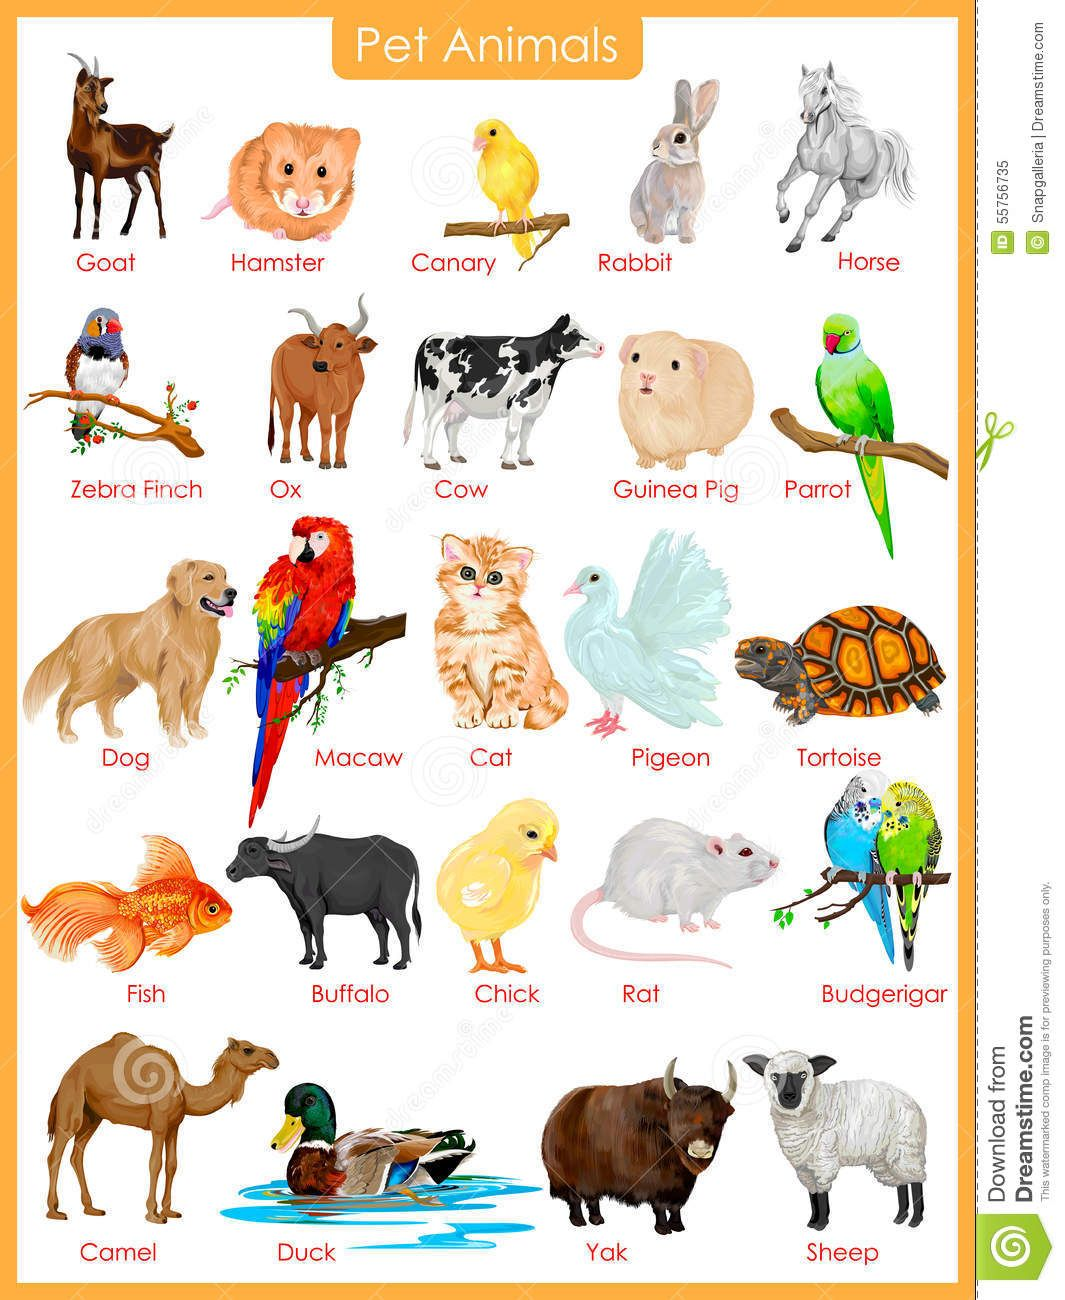 Image Result For Pet Animals Pictures Save Energy Quotes